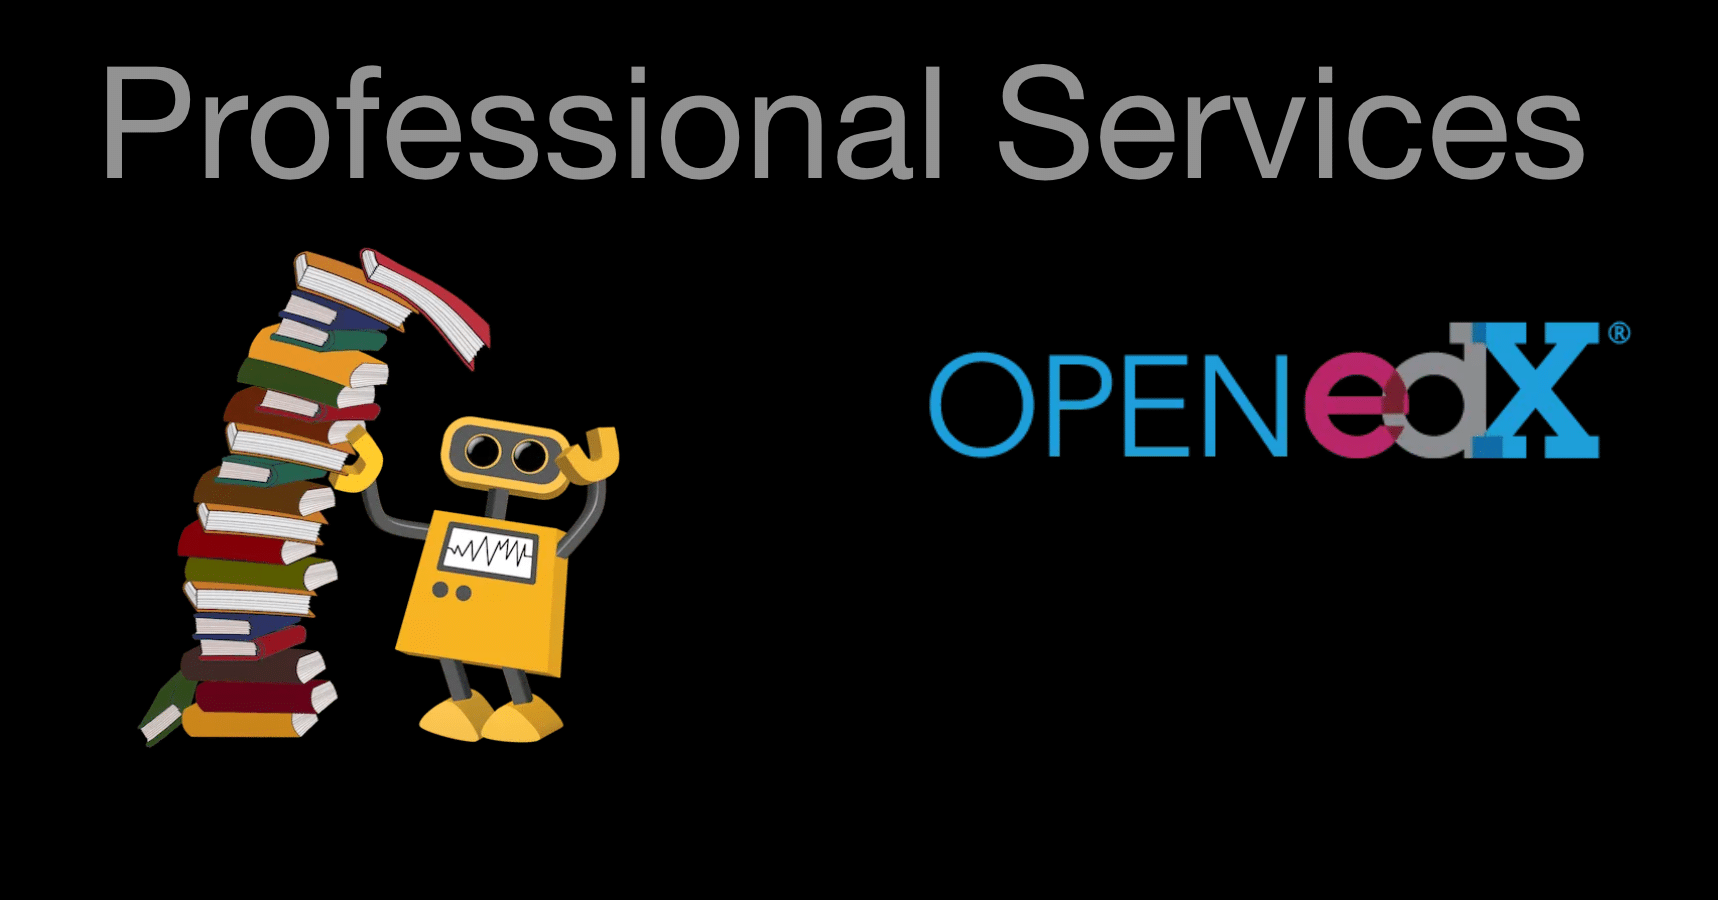 Open edX Professional Services